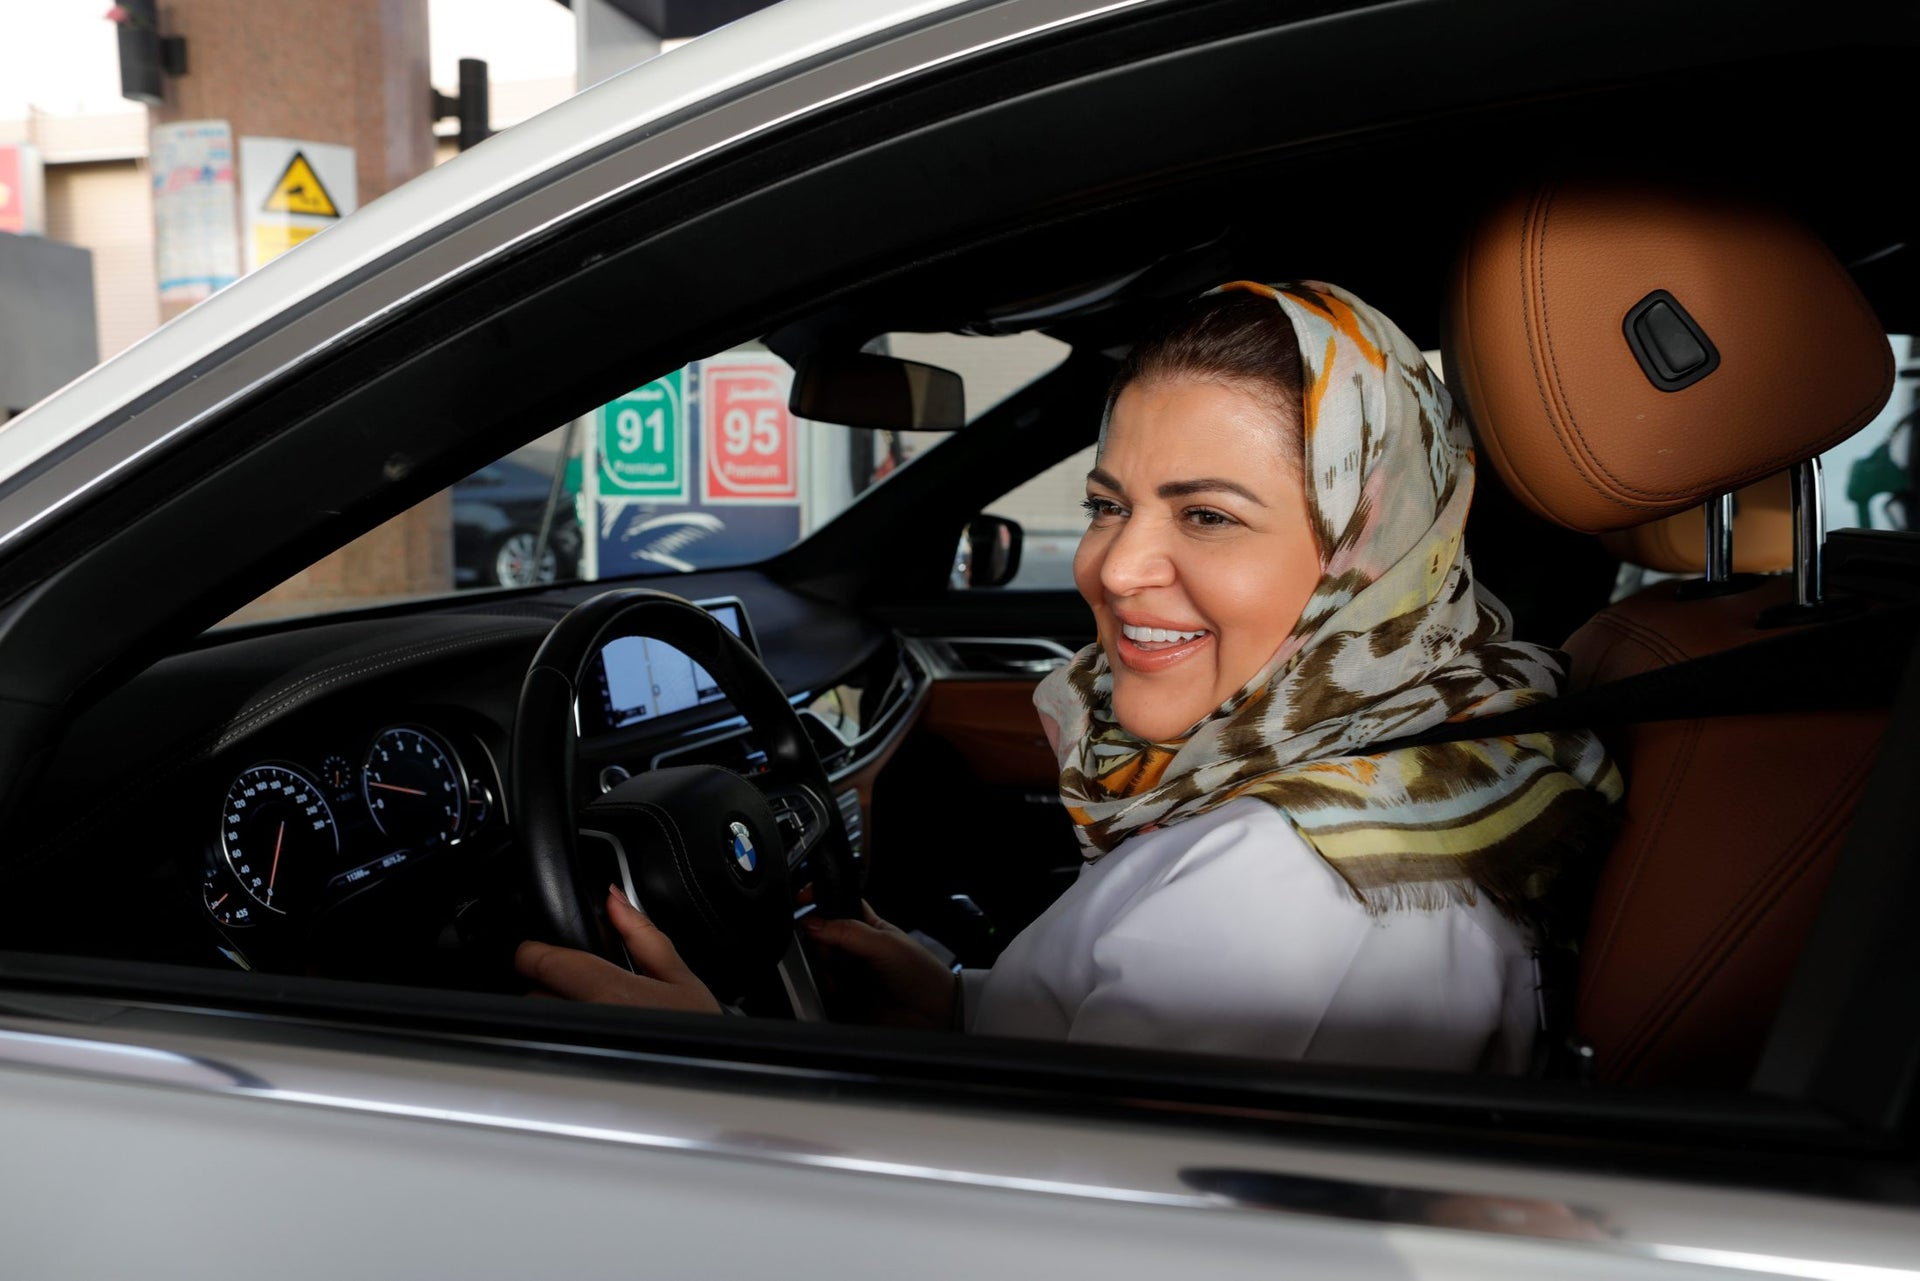 Dr Samira al-Ghamdi, a practicing psychologist, drives her car out in her neighborhood while going to work, in Jeddah, Saudi Arabia June 24, 2018.